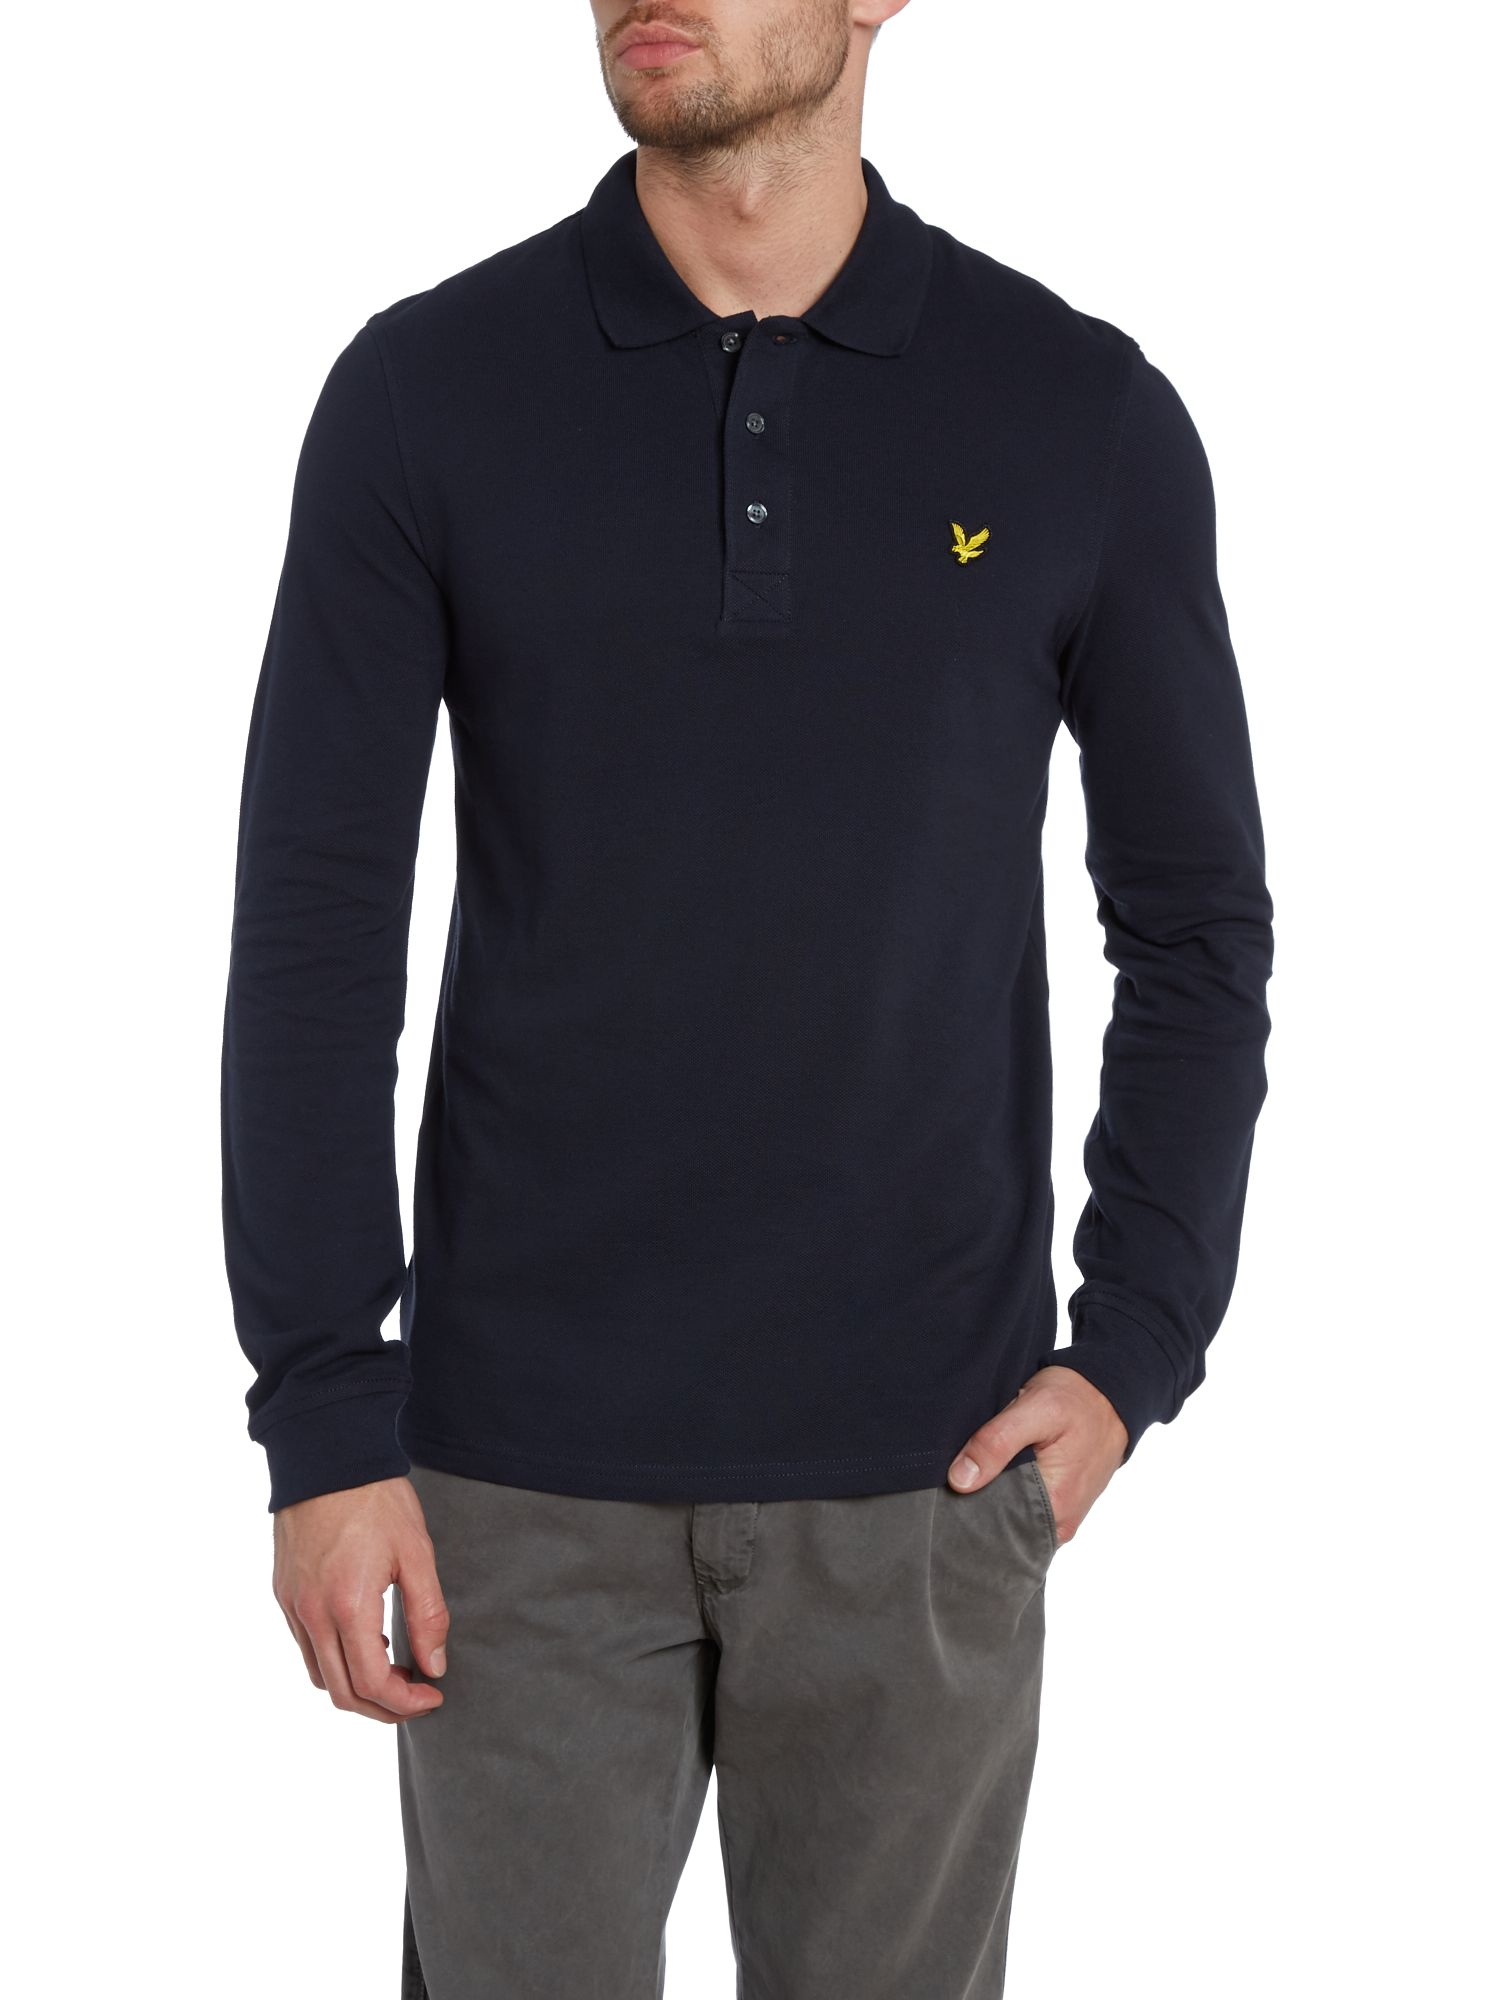 Regular fit classic long sleeve polo shirt